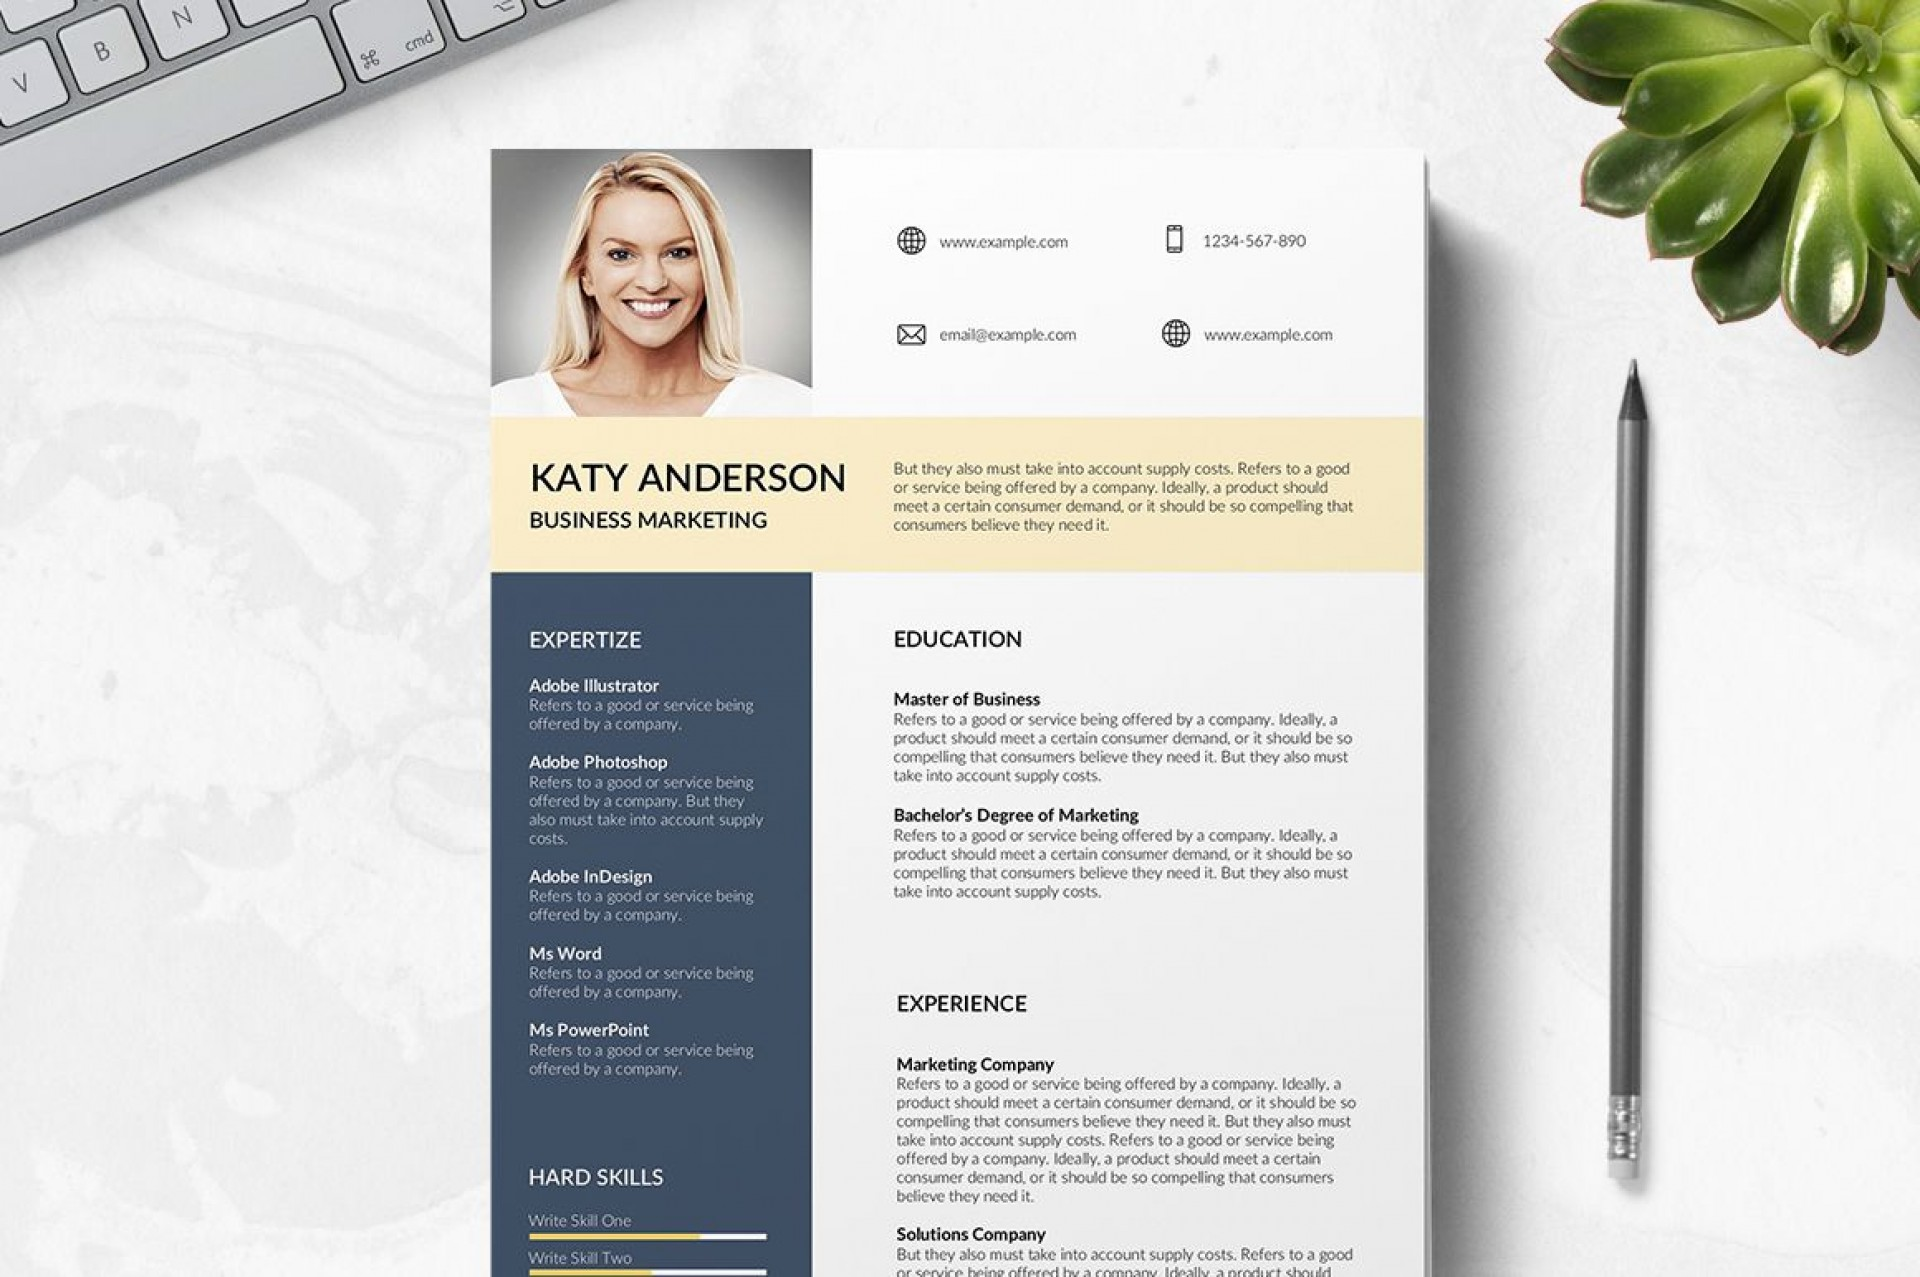 009 Astounding Curriculum Vitae Template Free Idea  Download South Africa Format Pdf Sample1920